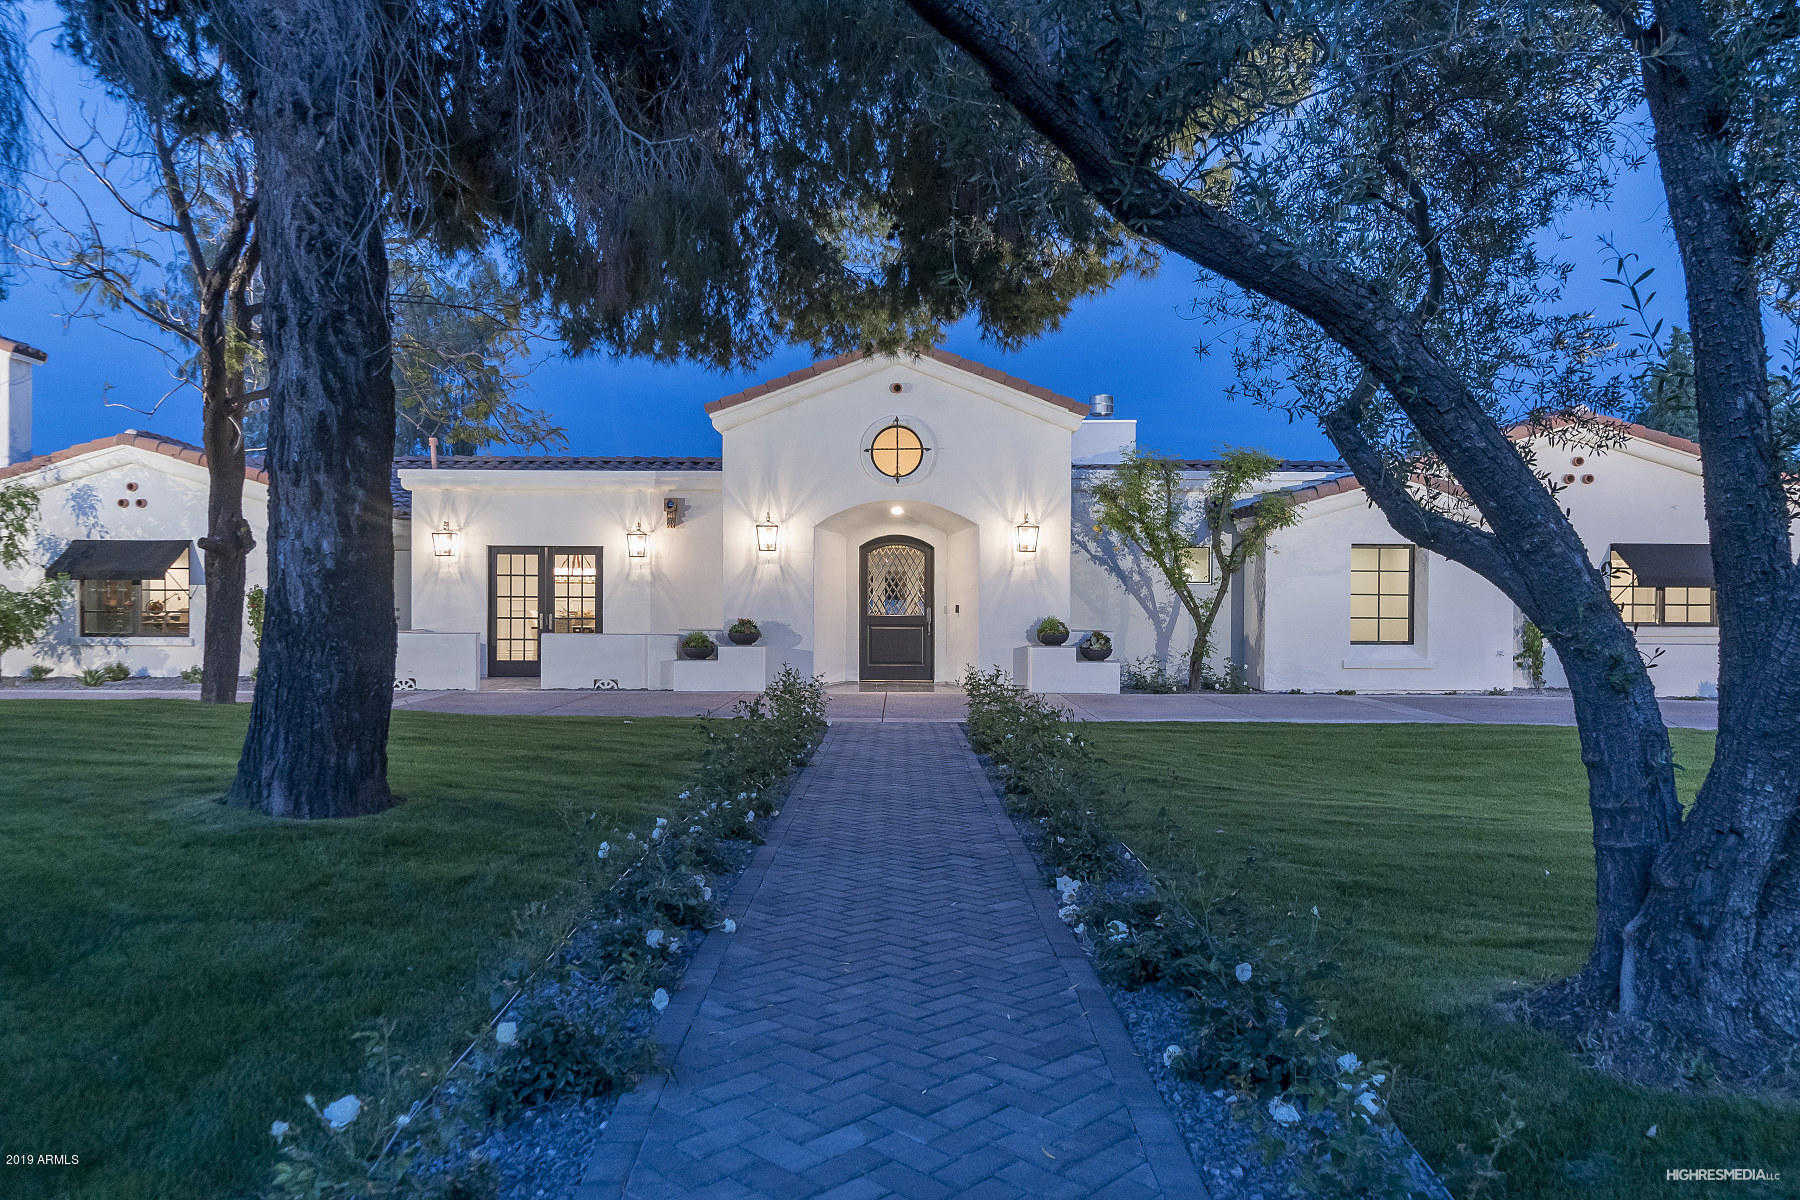 $2,750,000 - 5Br/6Ba - Home for Sale in Gary Estates, Paradise Valley